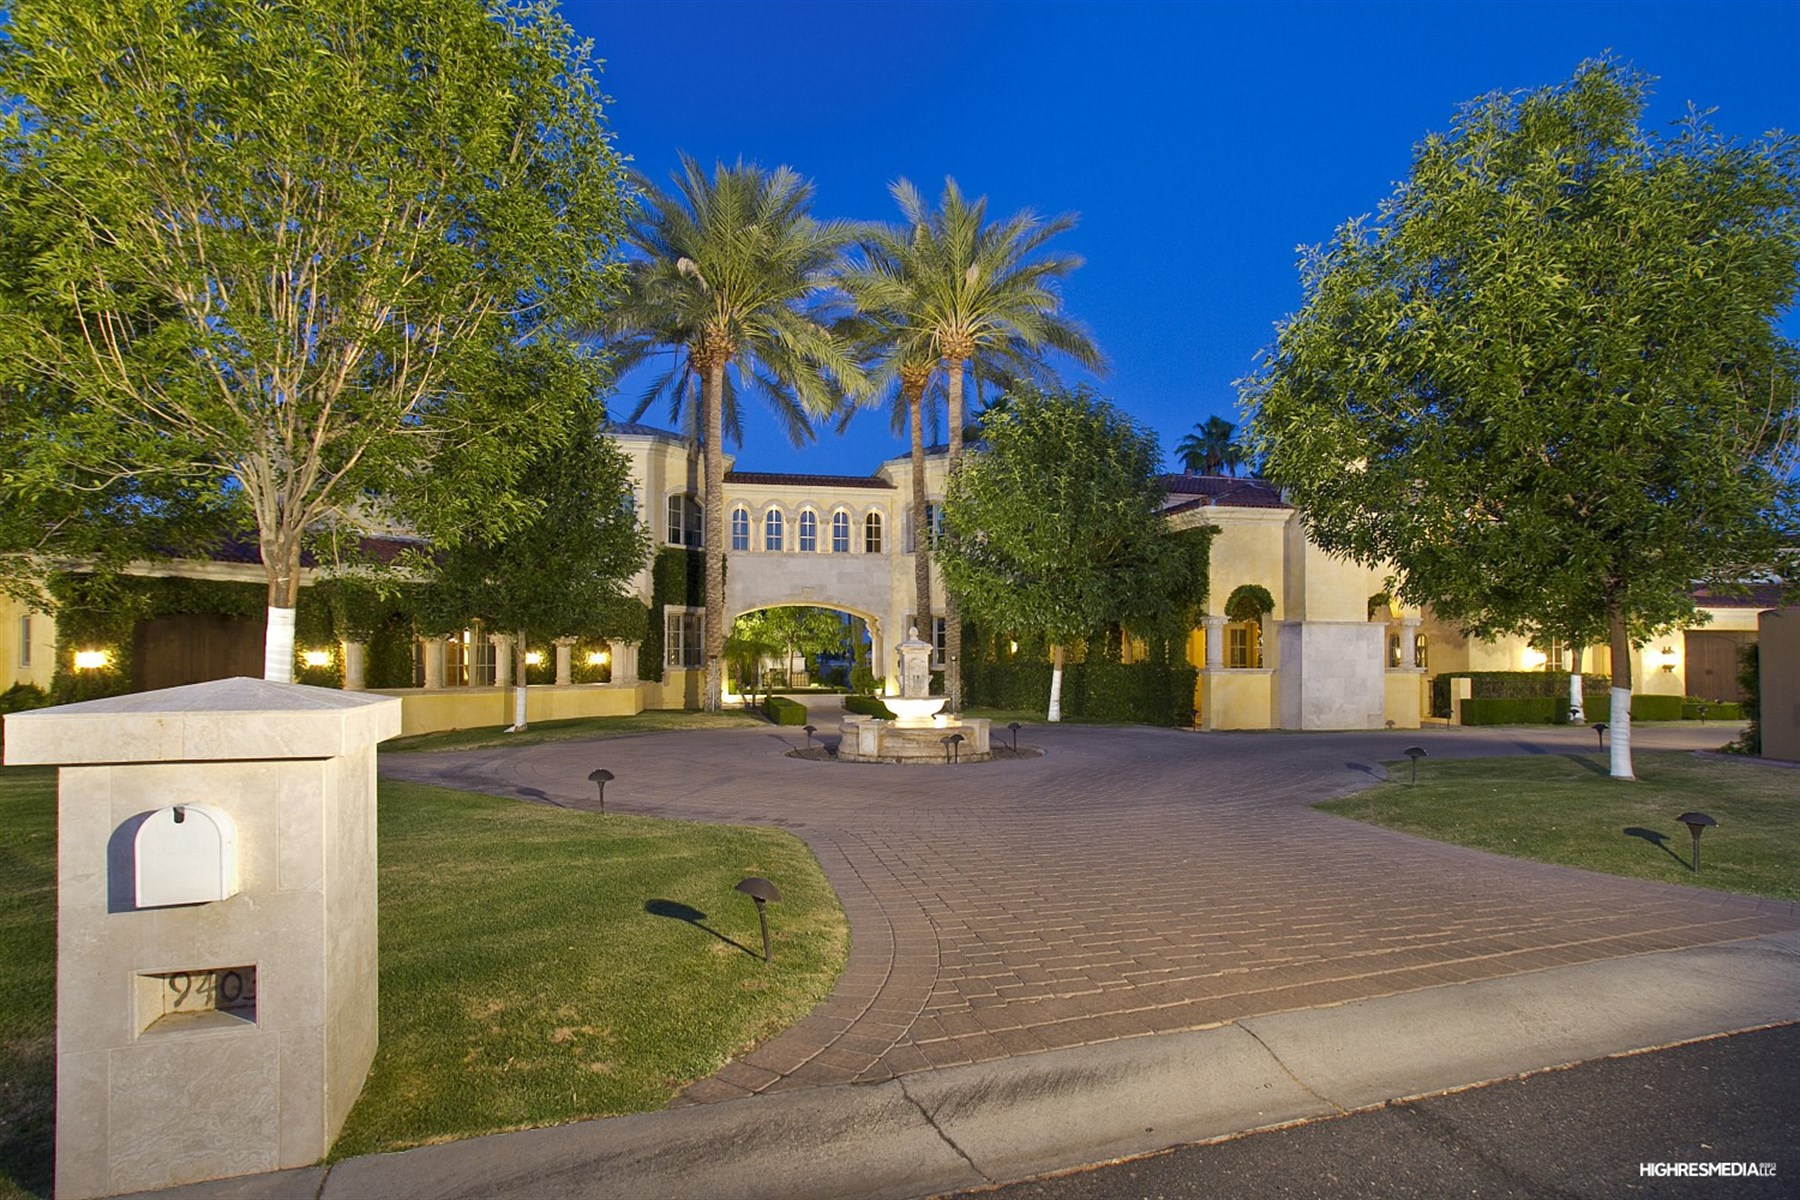 Maison unifamiliale pour l Vente à Classic Mediterranean Design Grand Estate on the golf course. 9403 N 55 ST Paradise Valley, Arizona, 85253 États-Unis